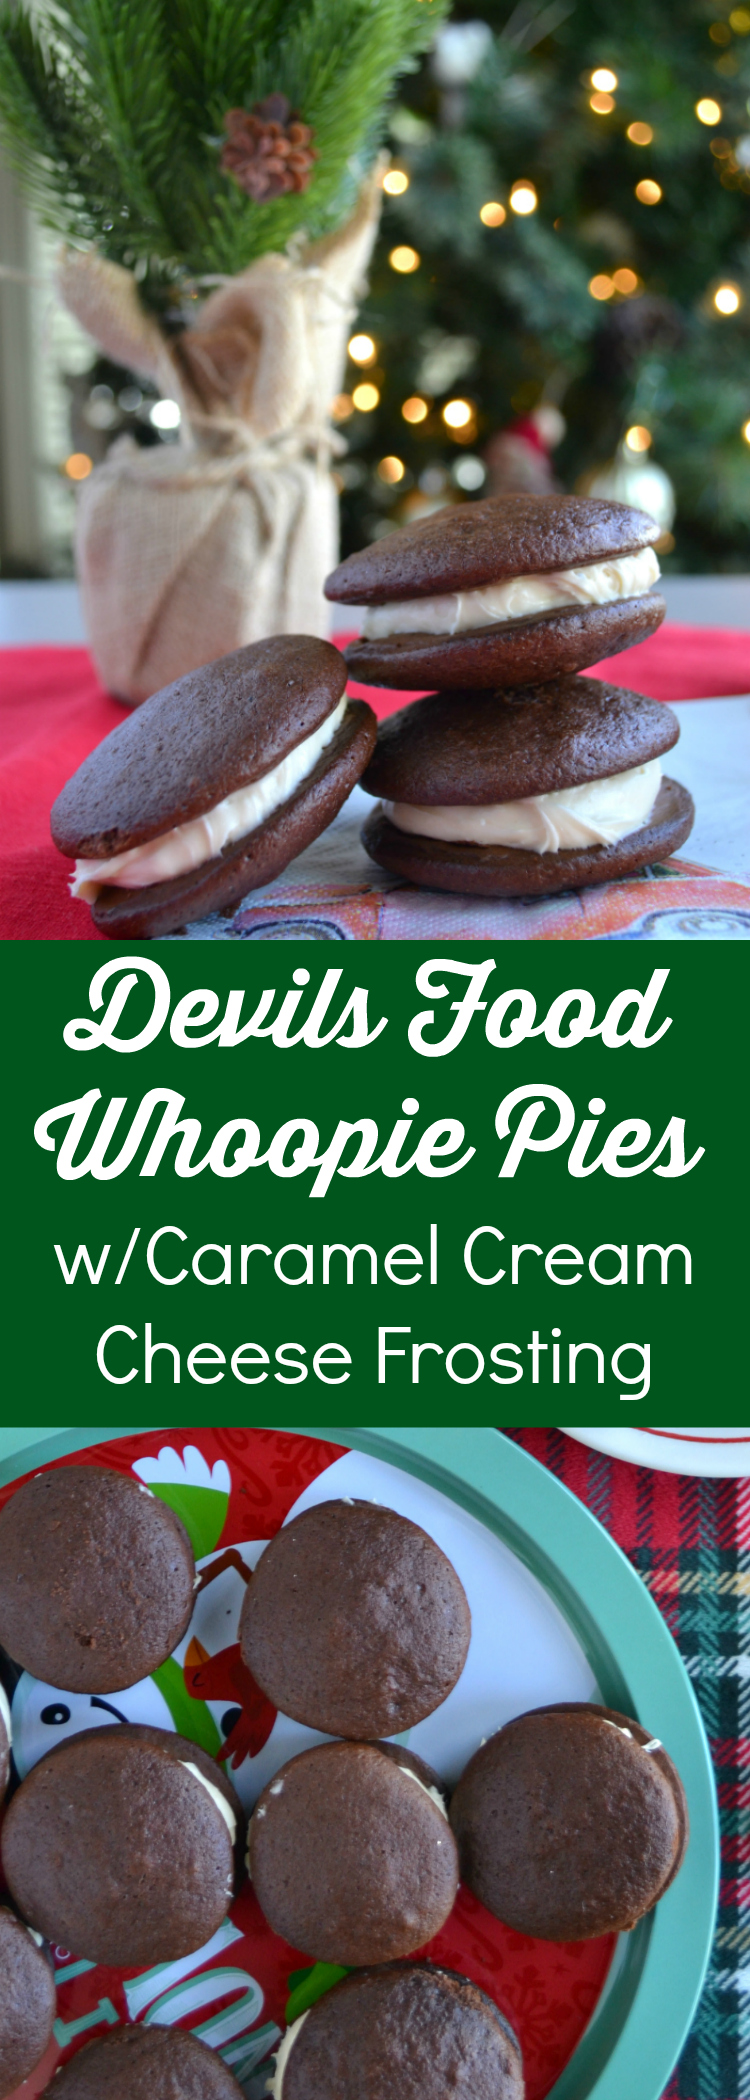 Devils Food Whoopie Pies with Caramel Cream Cheese Frosting are the best chocolate sandwich cookie. Transform a boxed cake mix and bake up a batch of these classic chocolate whoopie pies for a decadent, unique dessert. Fill with this rich caramel cream cheese frosting – perfect for parties!